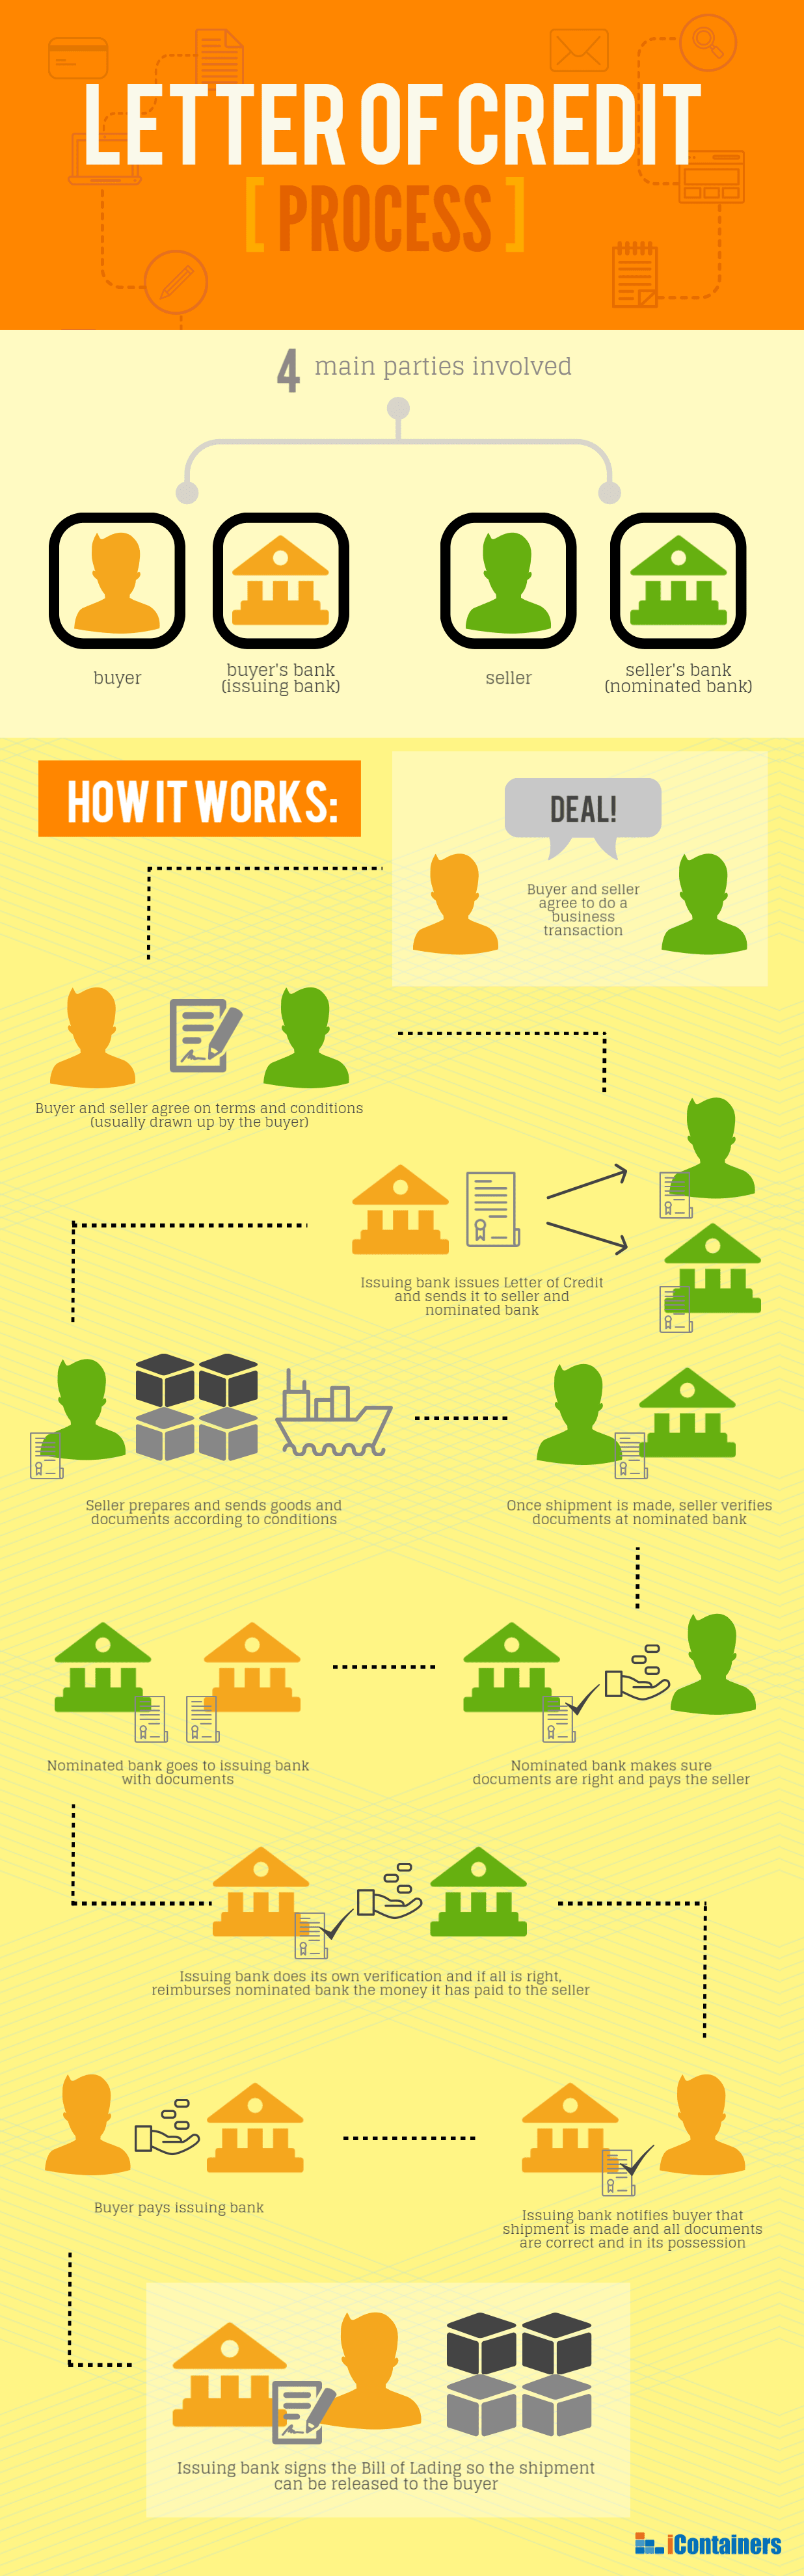 letter of credit infographic image